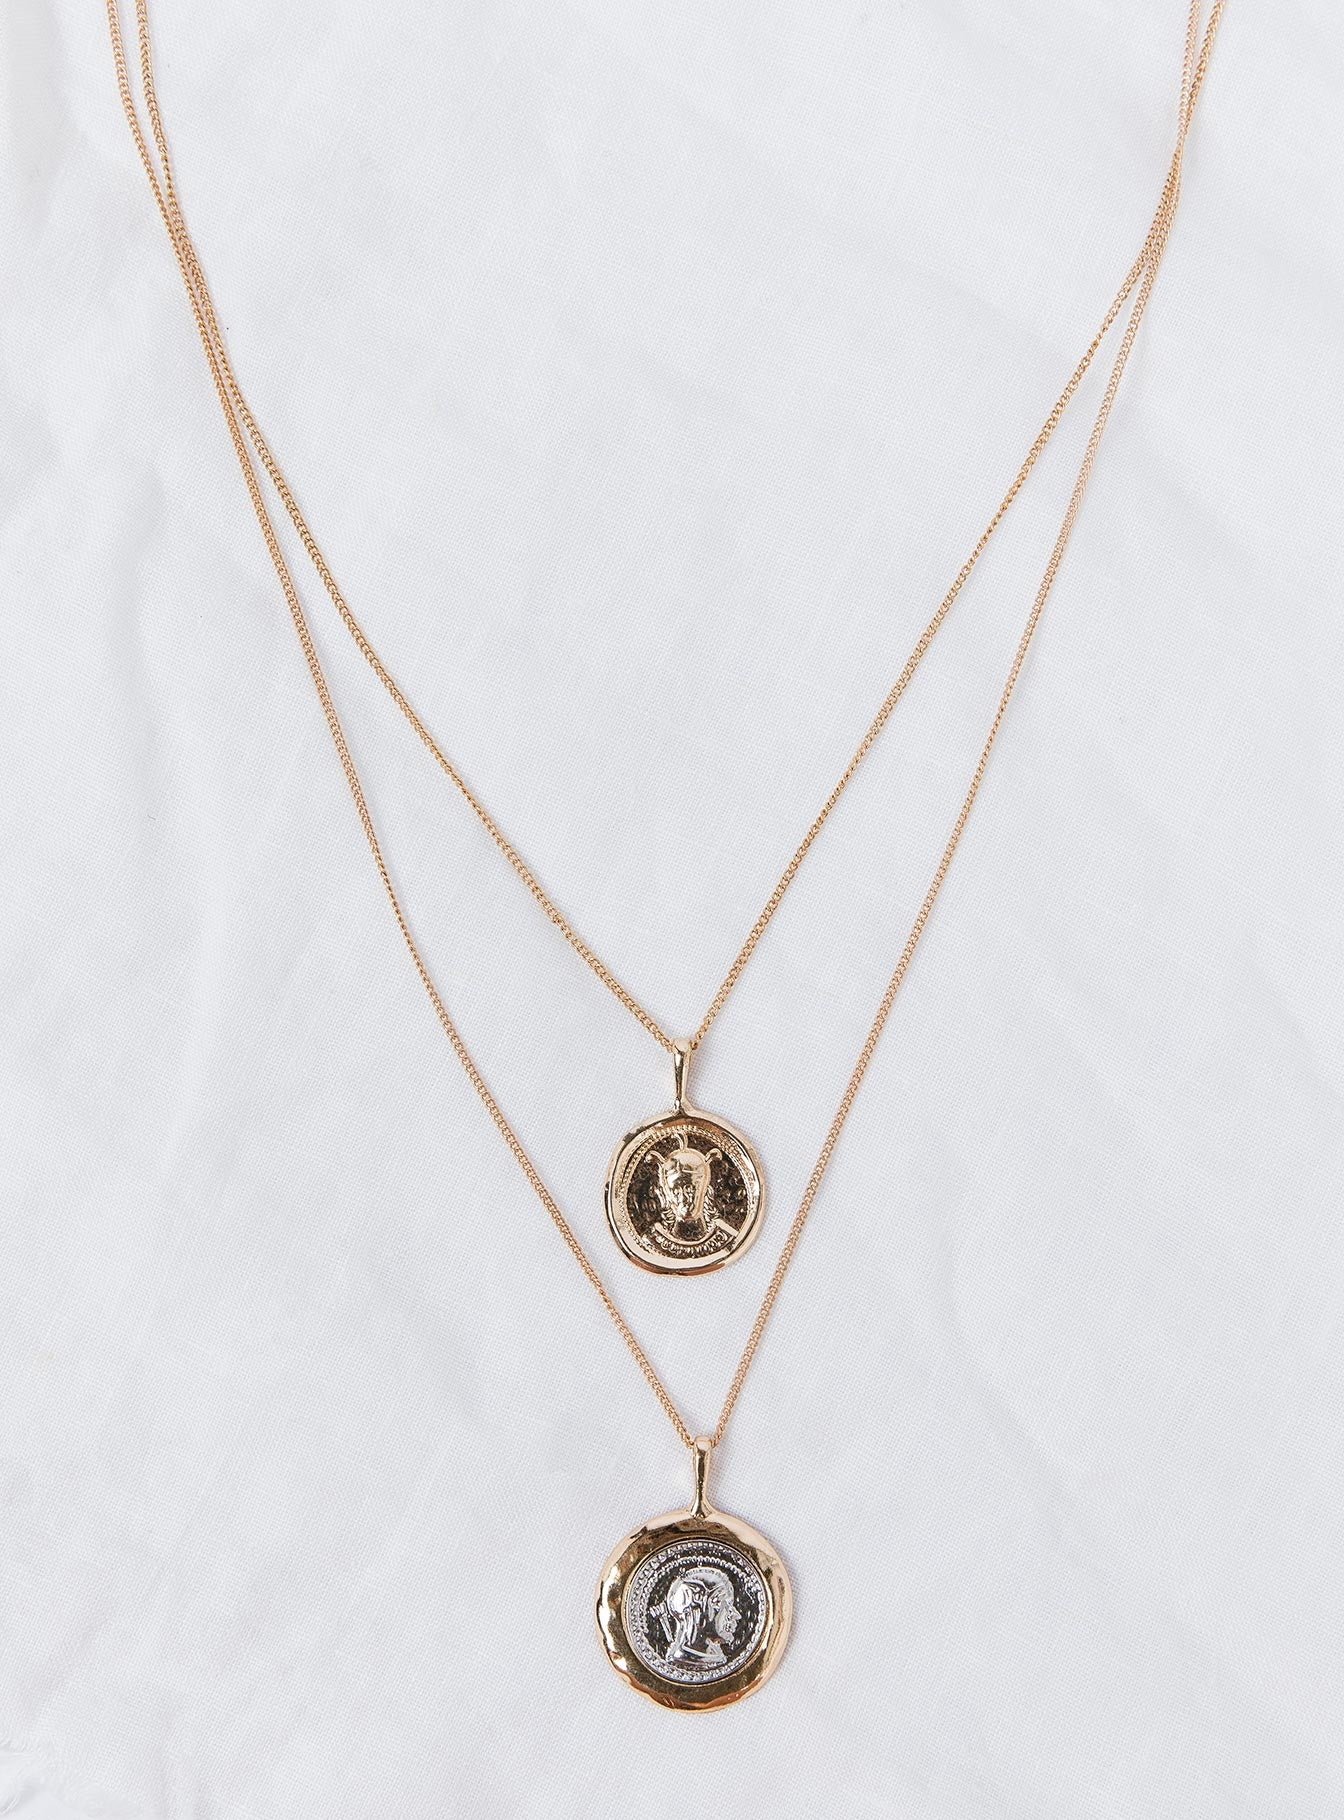 Lisa Love Necklace Gold